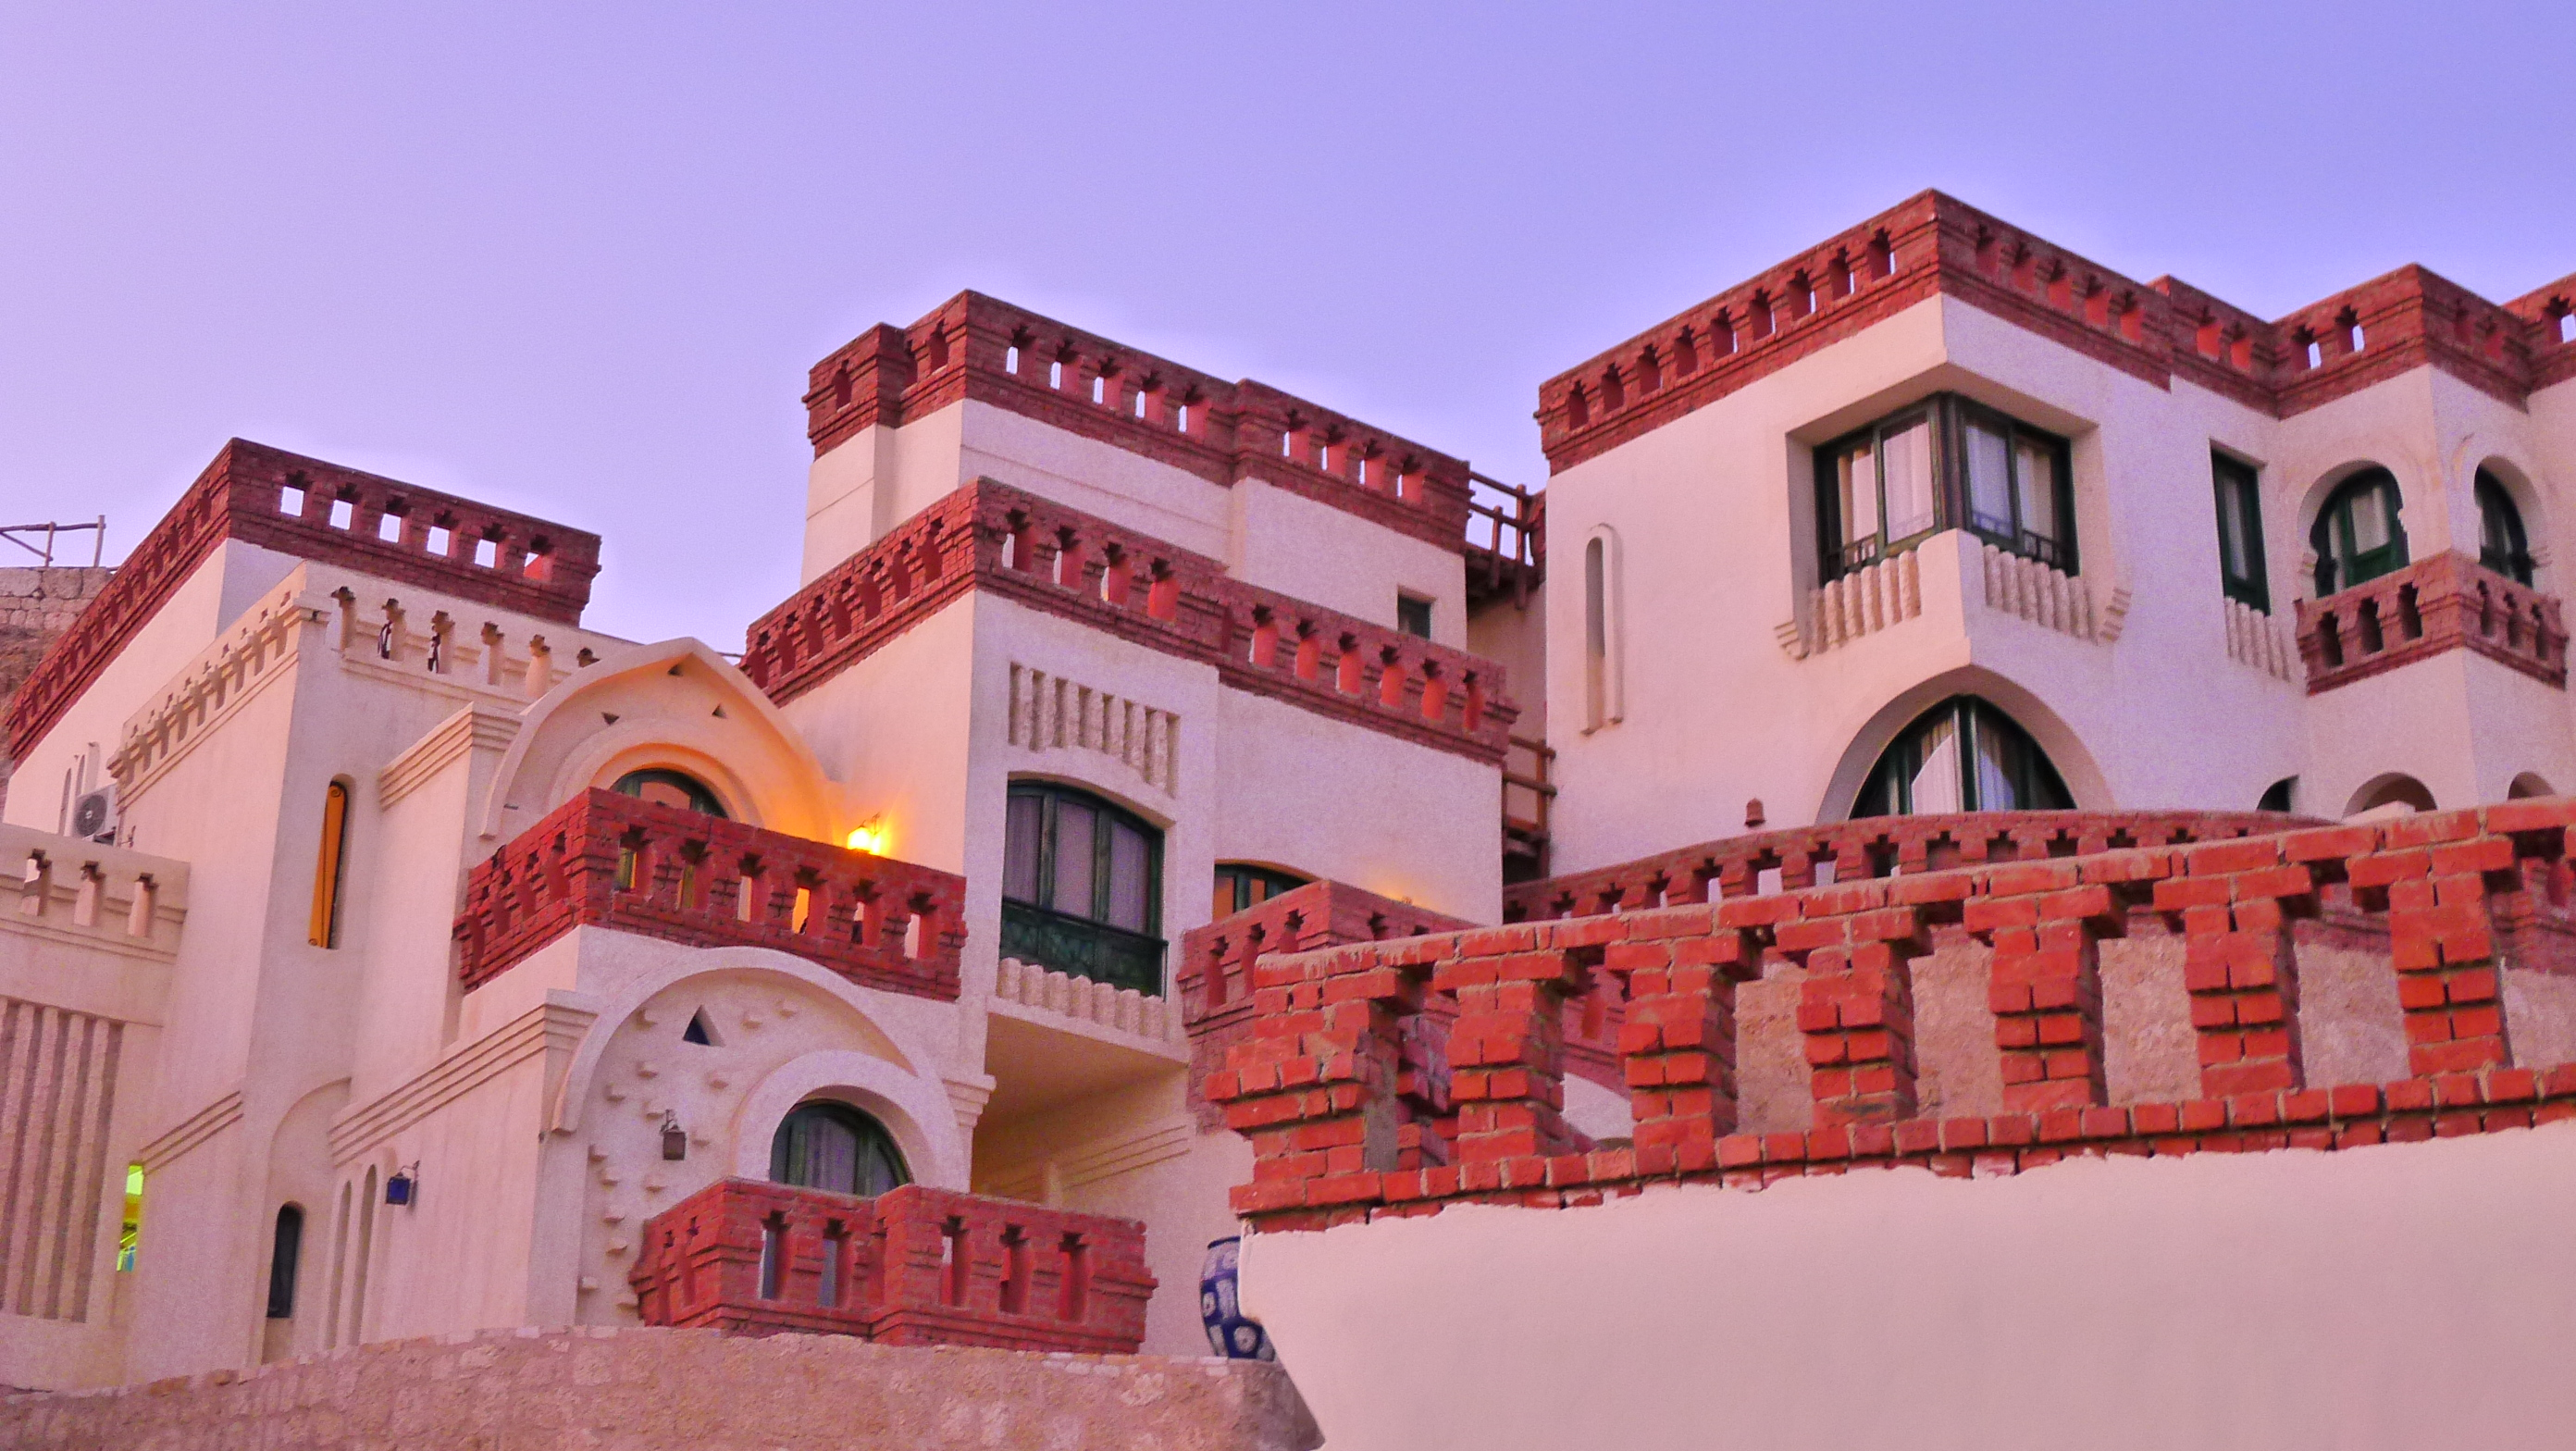 Our hotel at Shark Bay in Sharm El Sheikh